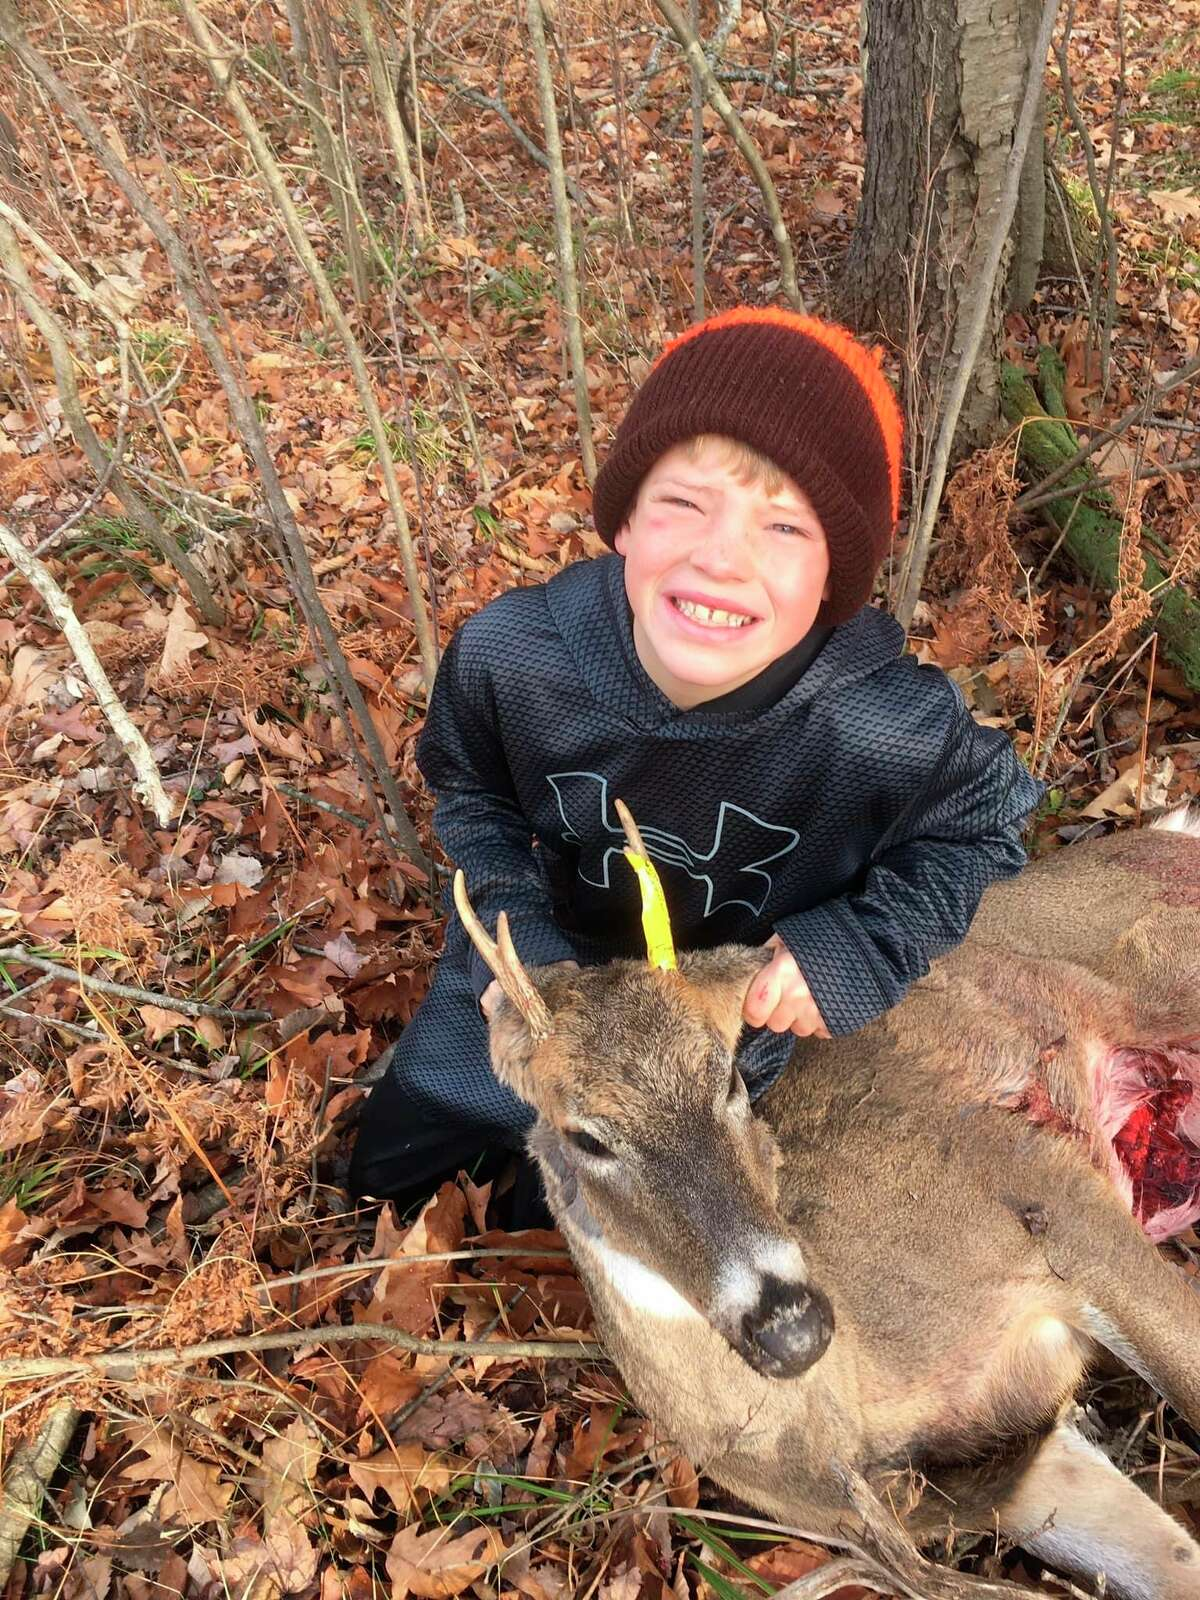 Oliver Walker, 10, of Cass City, bagged his first buck, a Thumb 4-point, during the final weekend of the firearm deer season while using a .50 caliber muzzleloader. He was hunting with his grandfather, Bob Walker, of Kingston. (Photo by Ryan Walker)